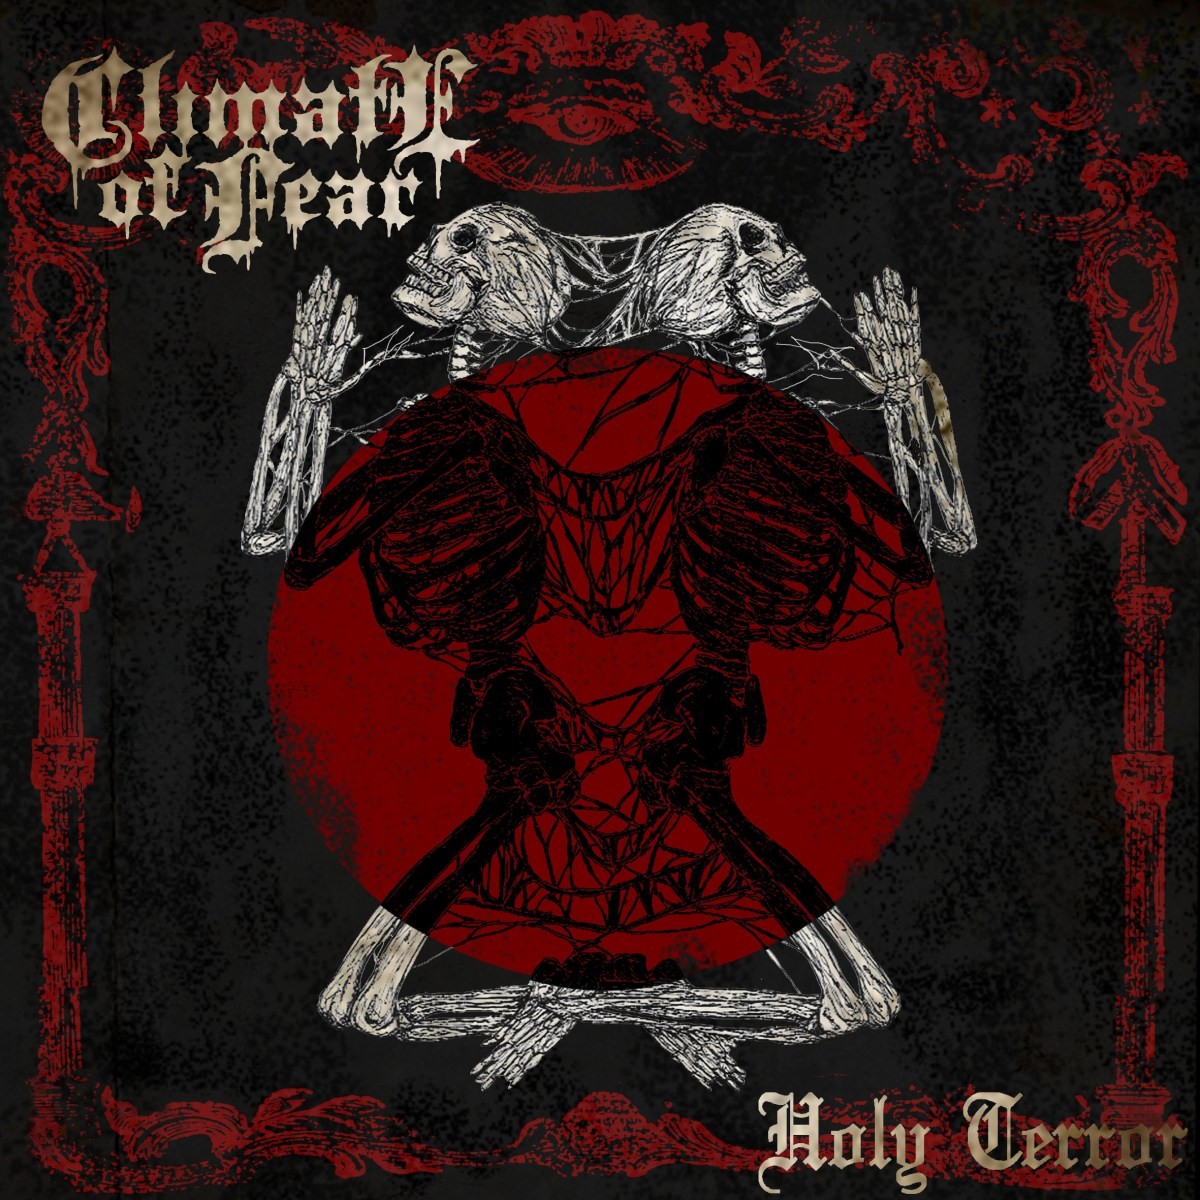 Climate of Fear – Holy Terror (Demons Run Amok)